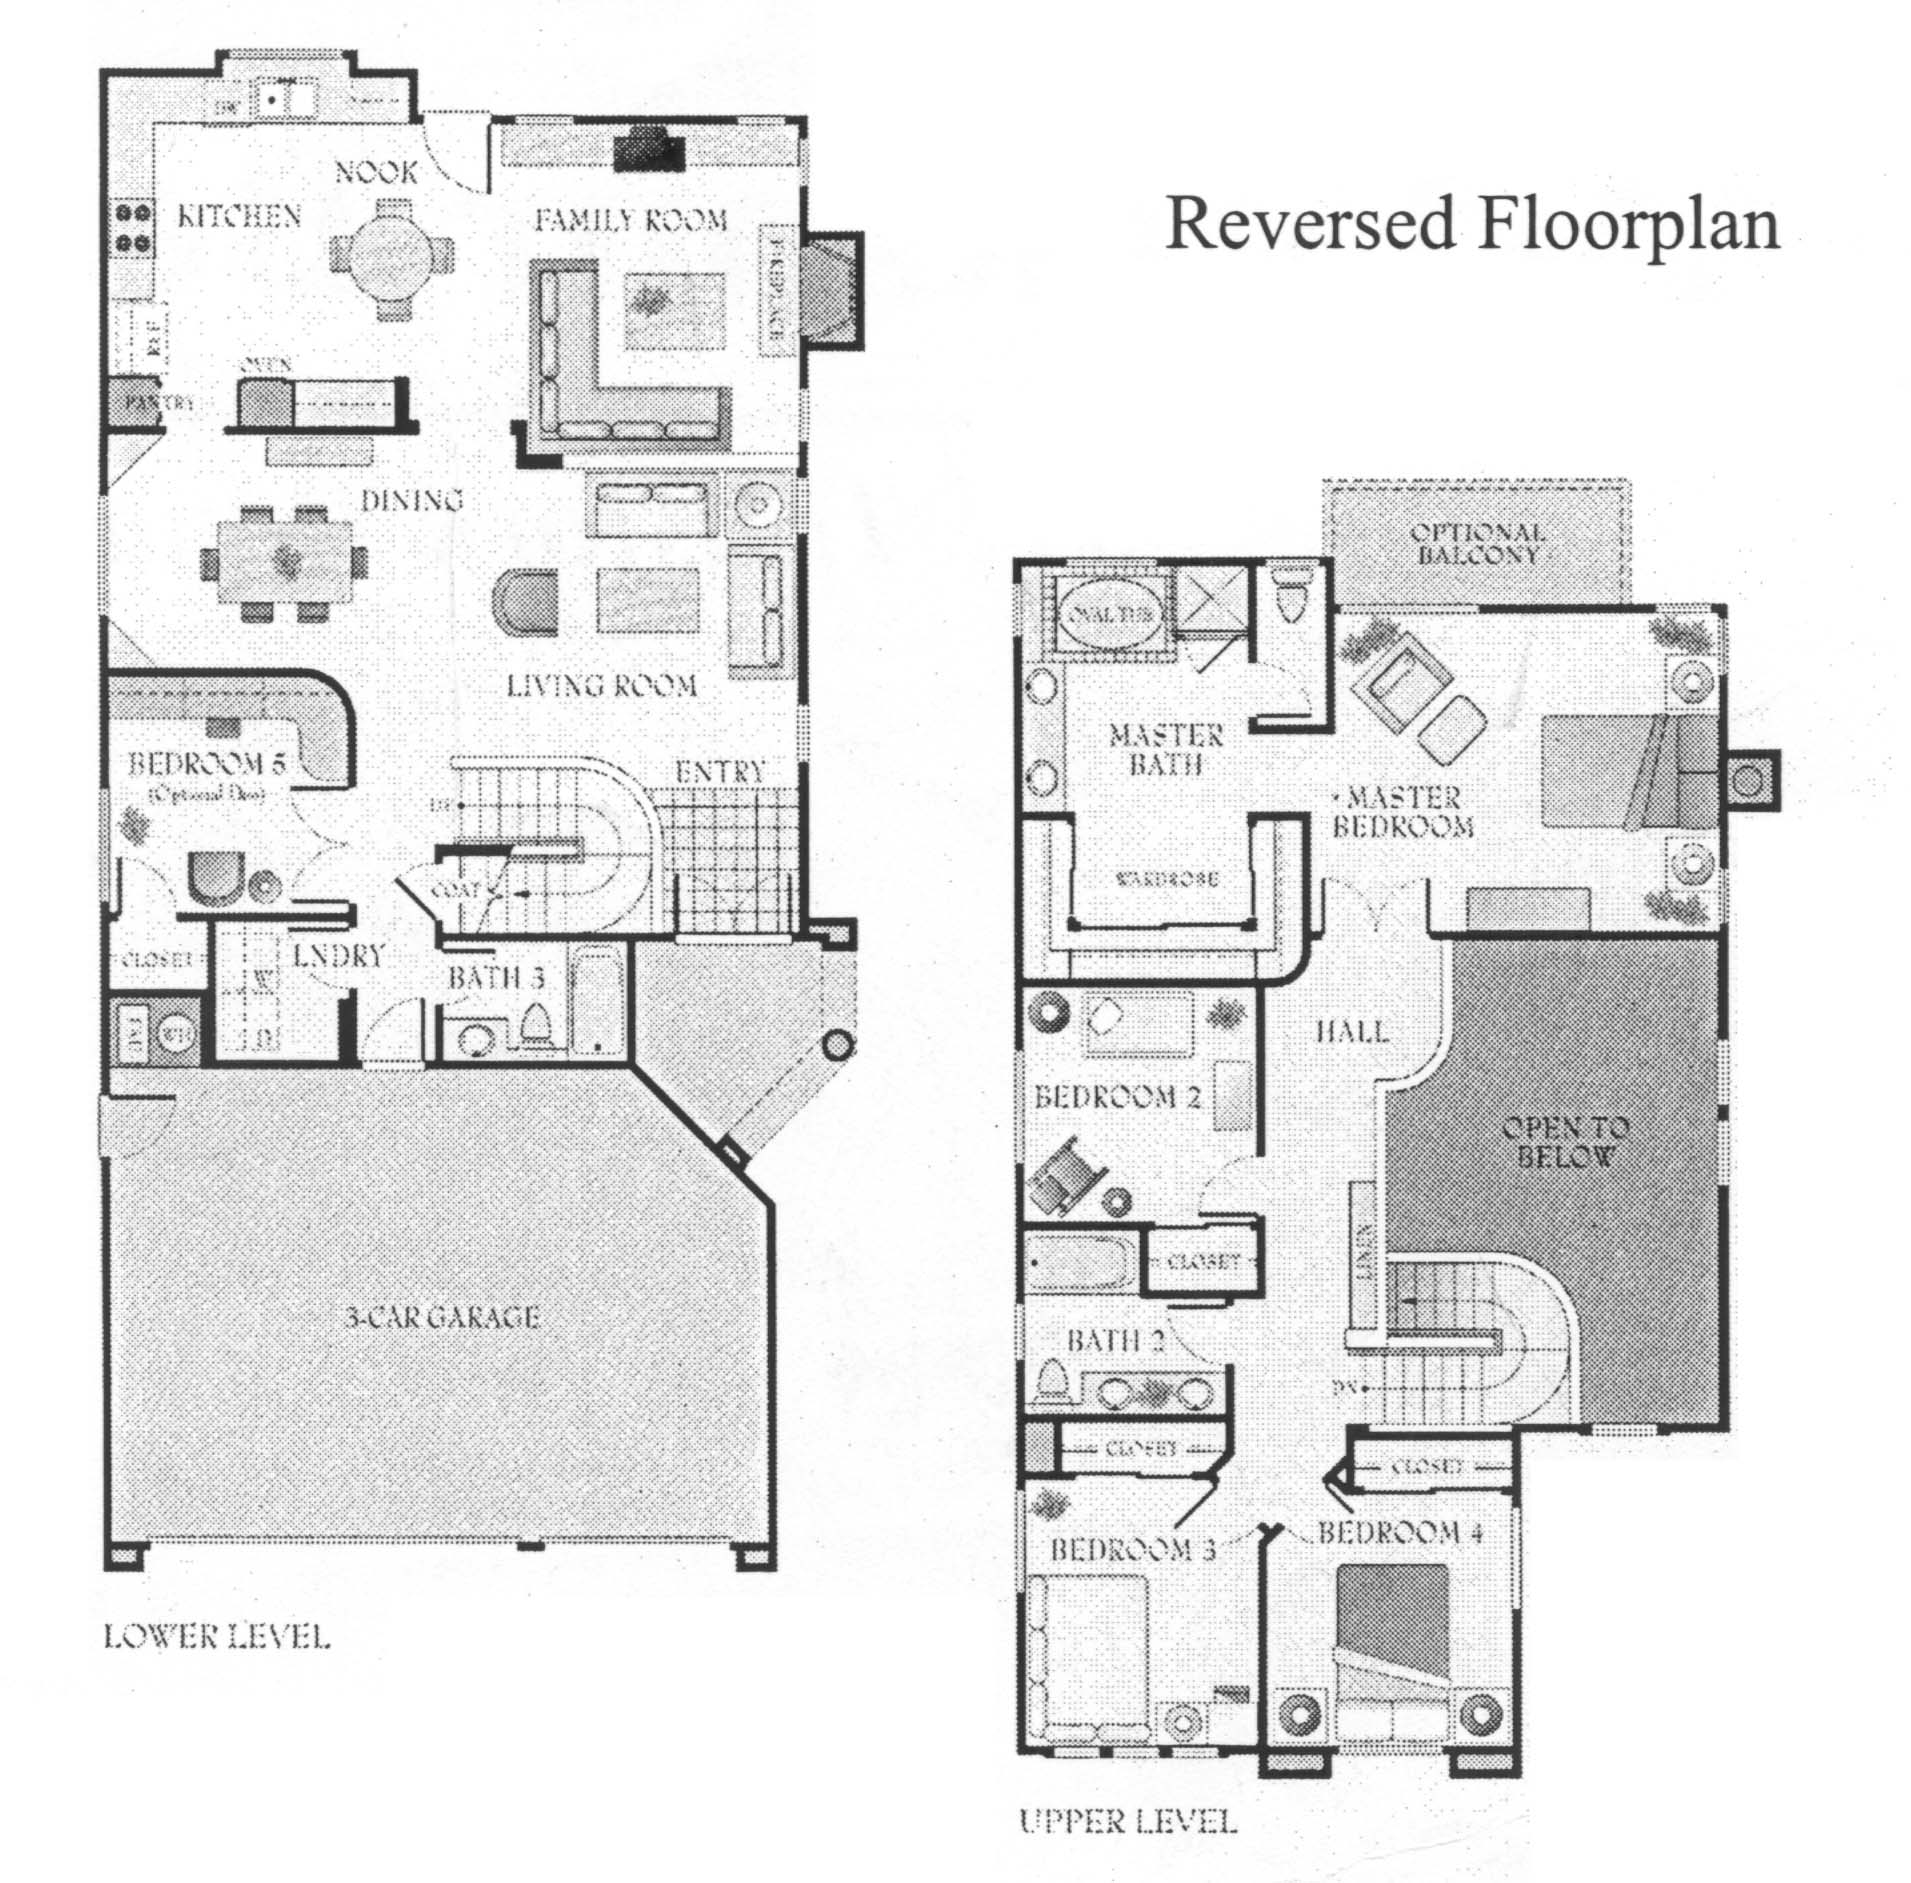 Master bath floor plans best layout room for Best master bathroom floor plans